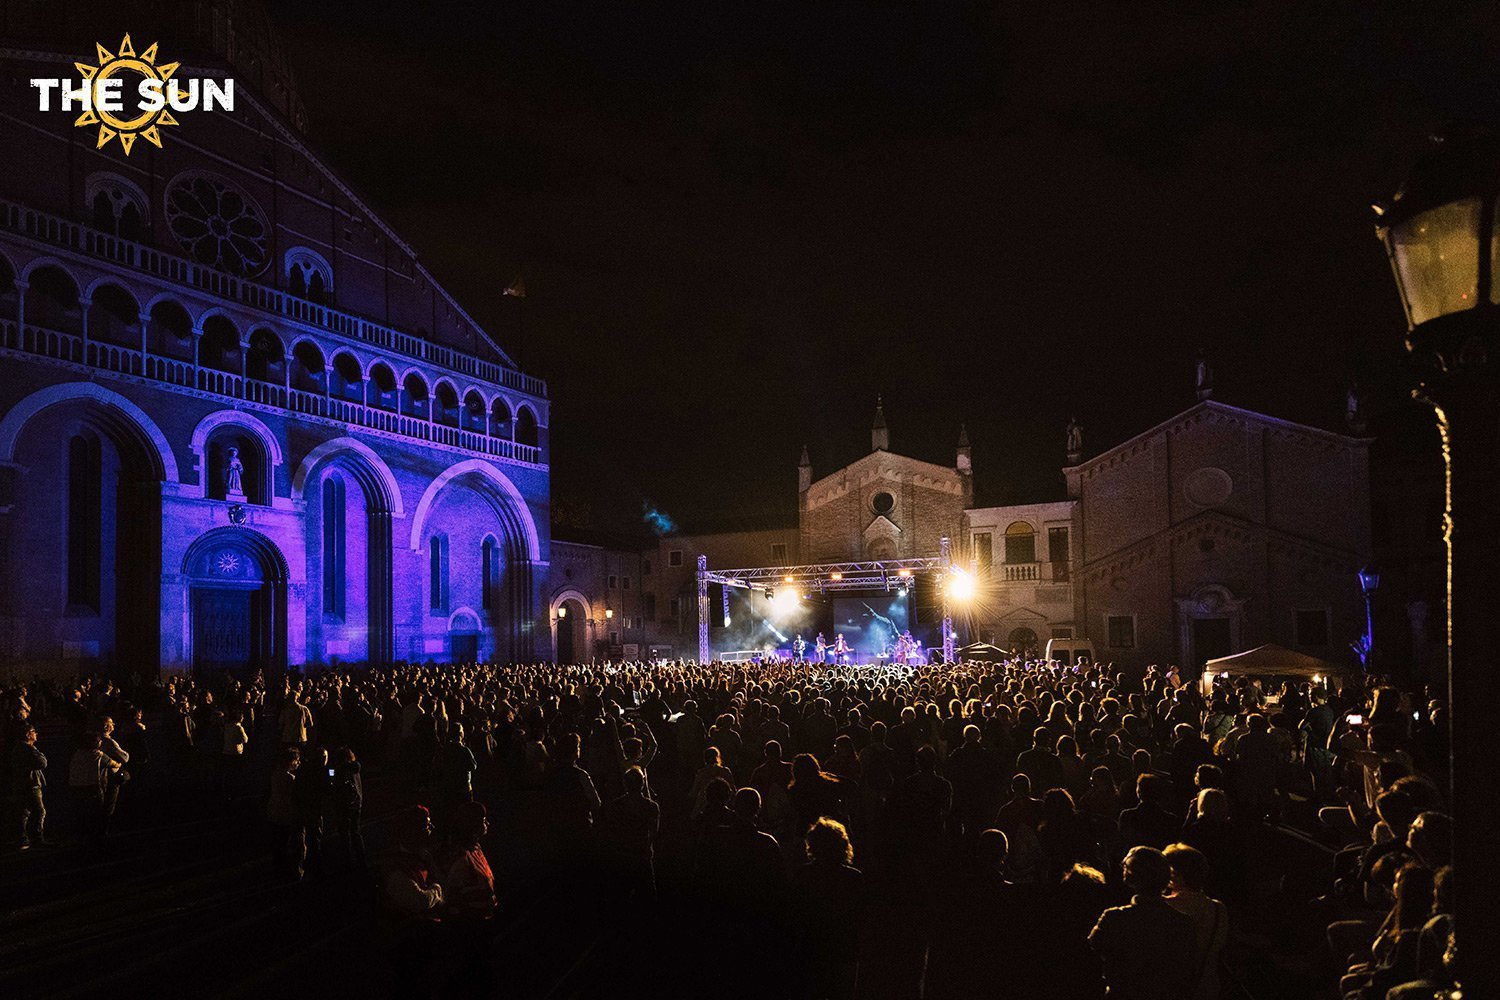 the sun rock band live padova basilica di sant'antonio